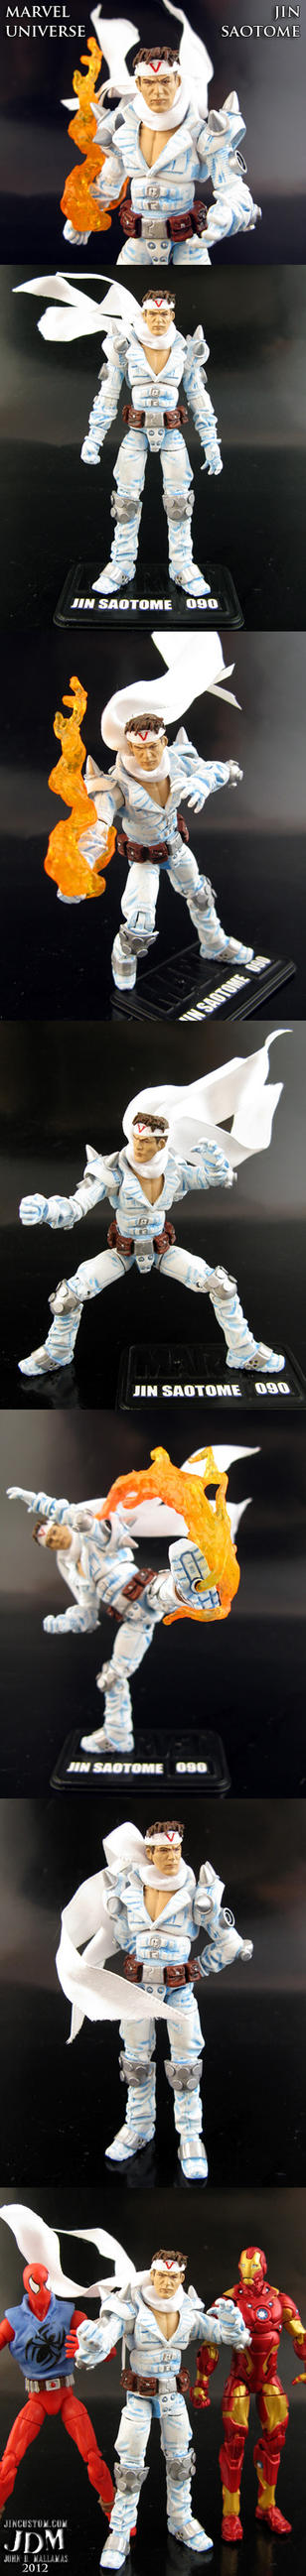 Jin Saotome Marvel Universe action figure by Jin-Saotome